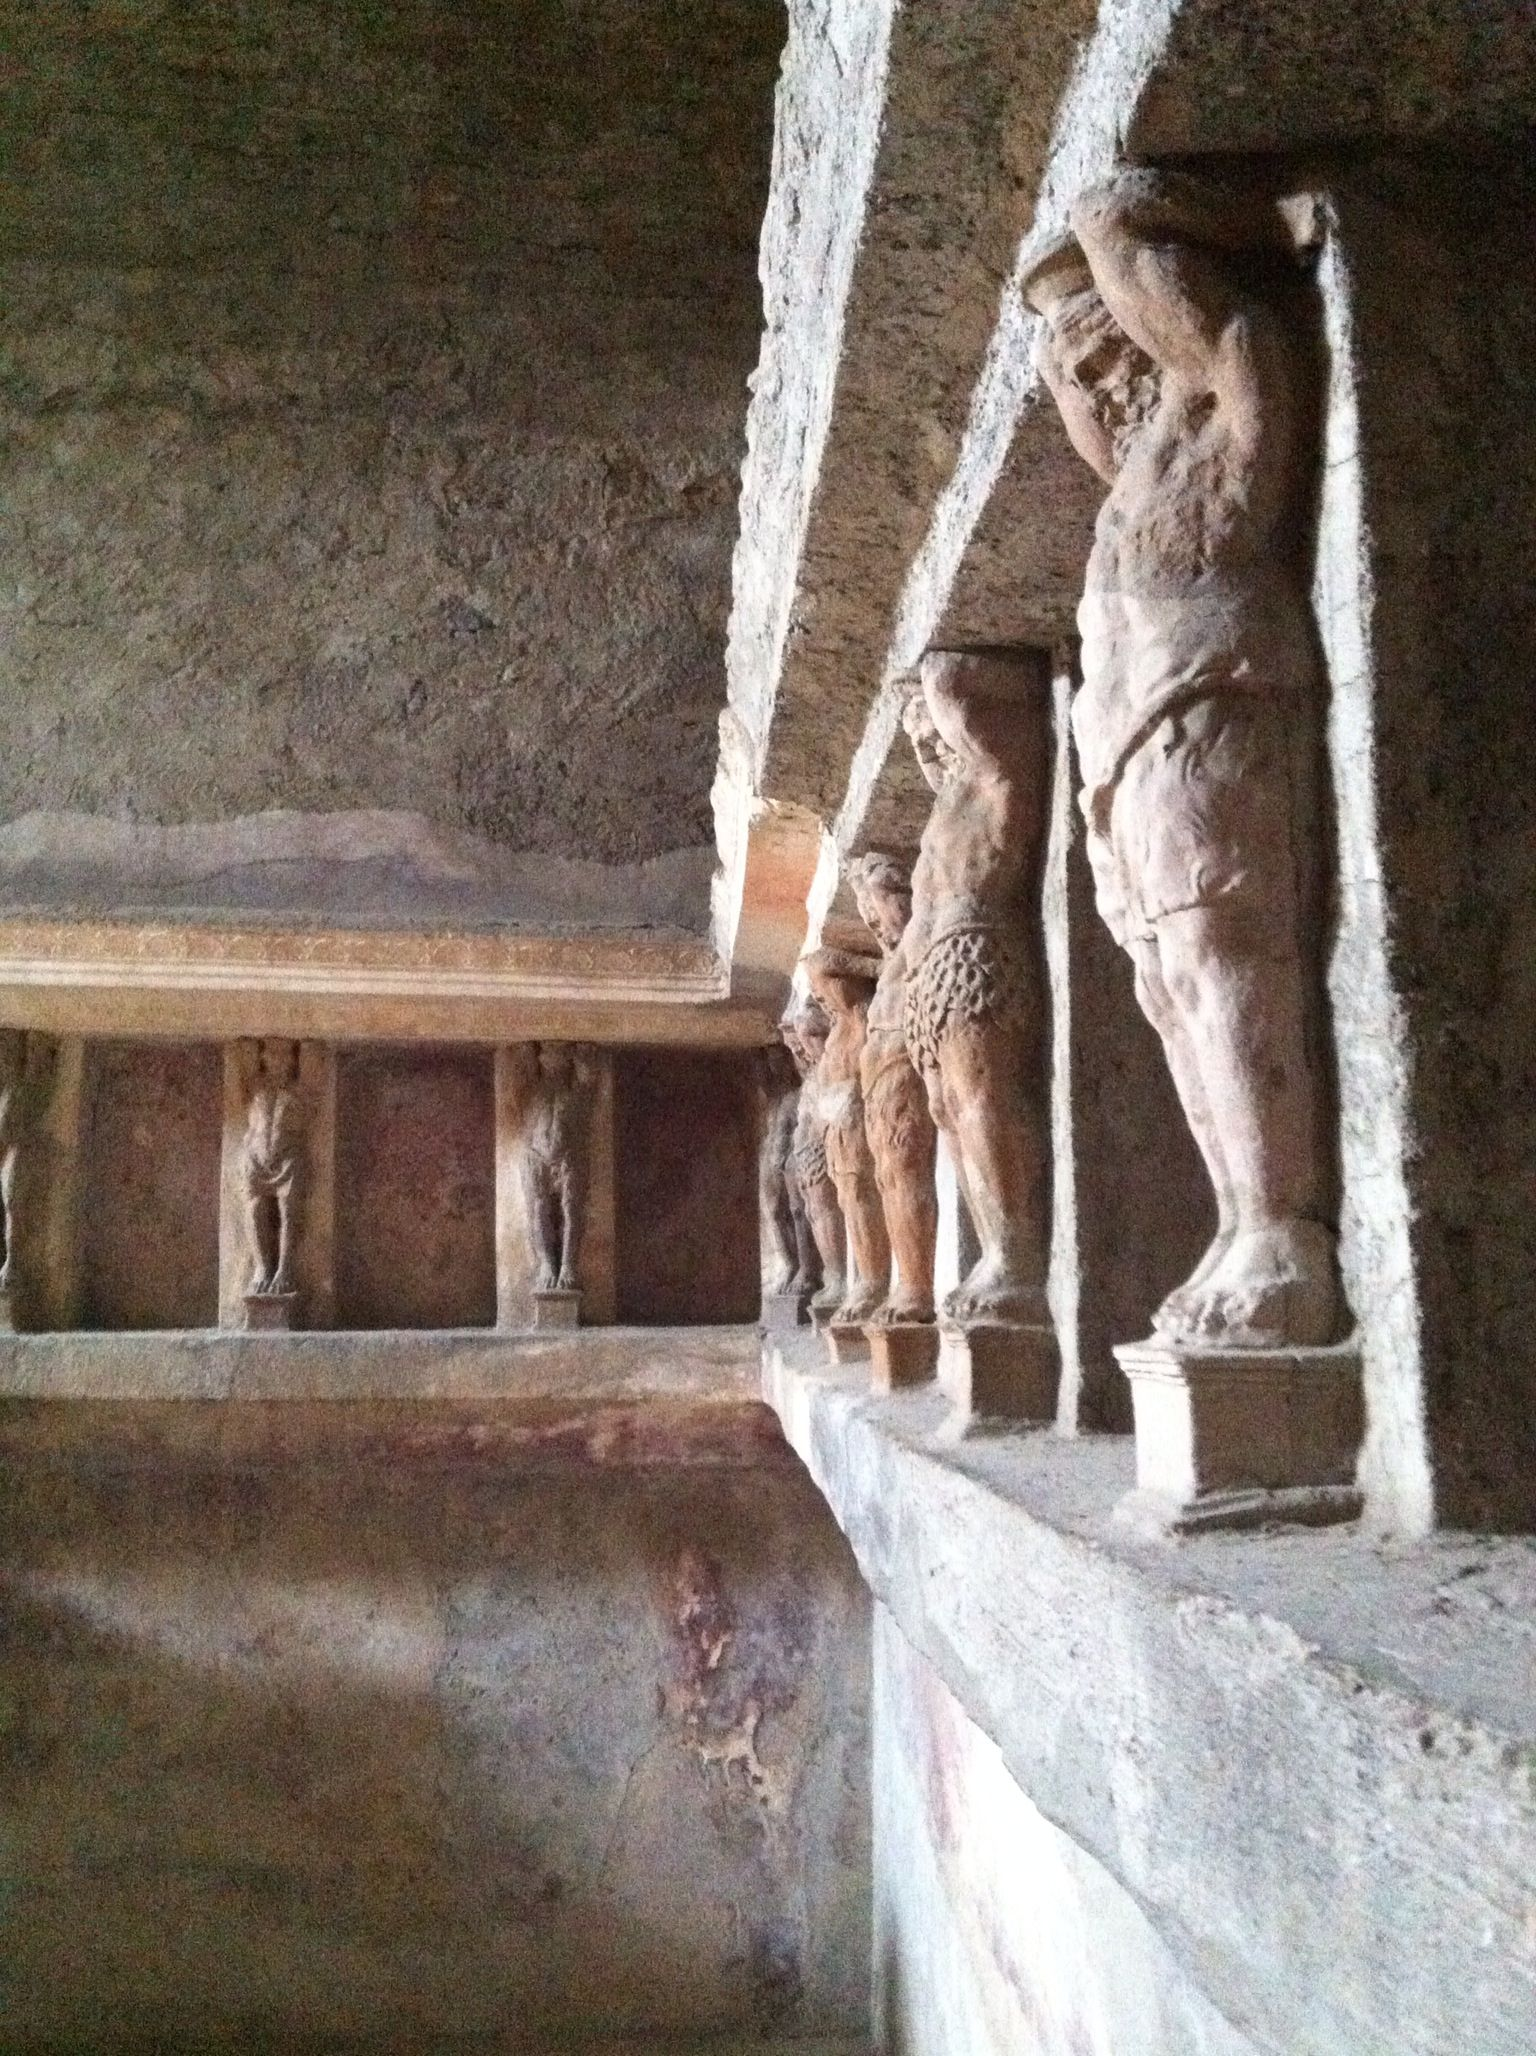 Pompei Italy Truly Impressive Especially After All This Time With Images Pompeii Italy Pompeii And Herculaneum Ancient Rome